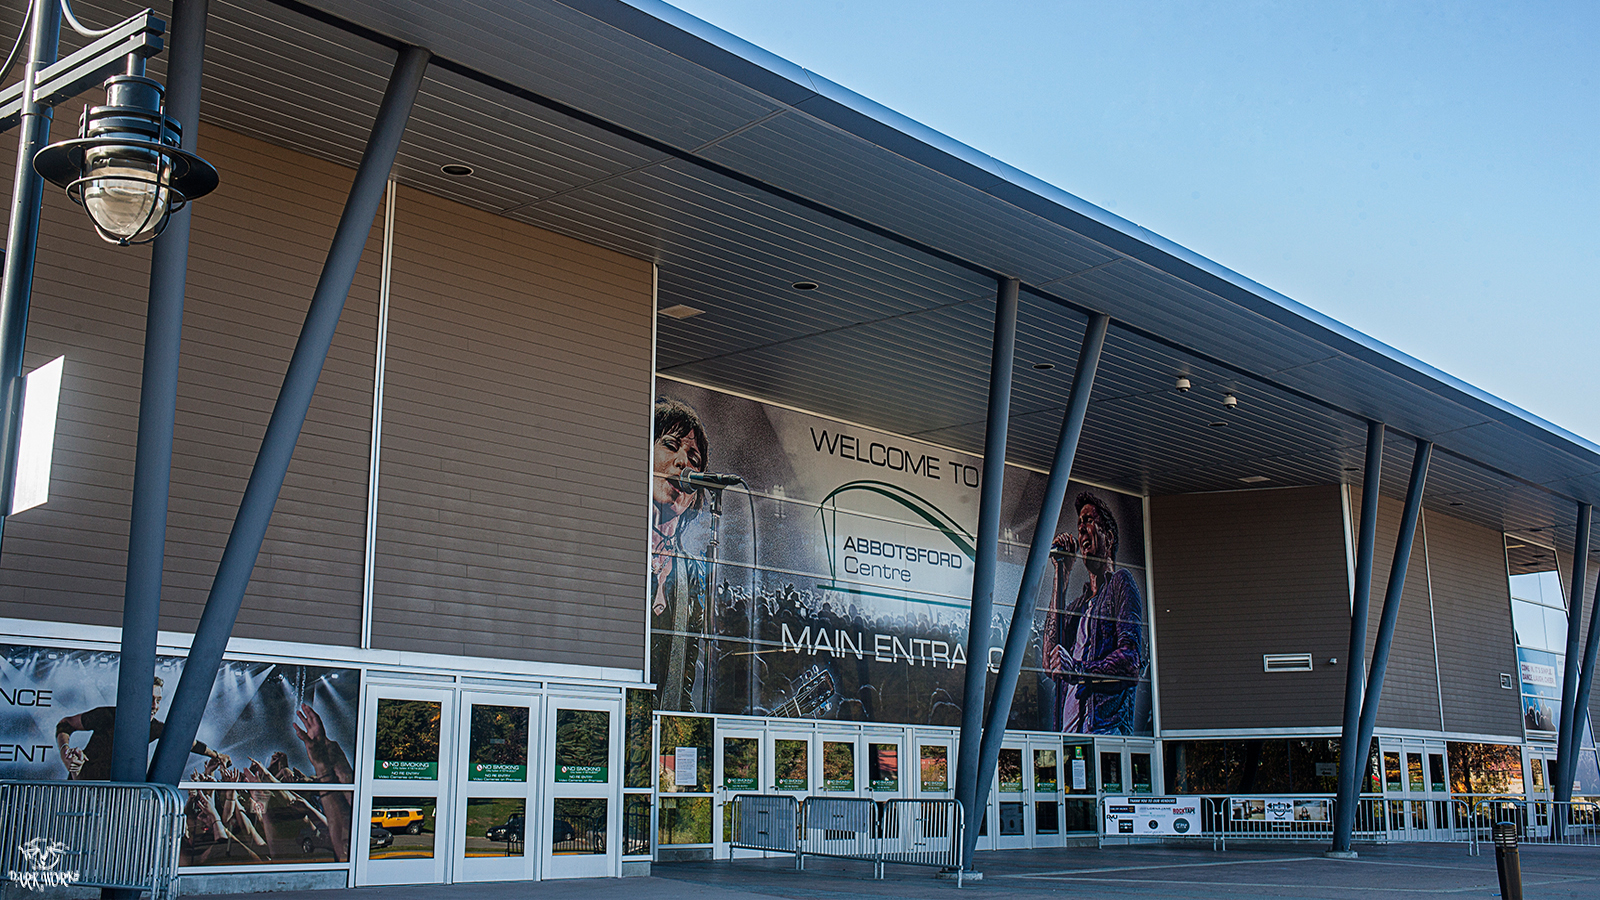 Abbotsford Centre Ranked Among Top Venues in Canada